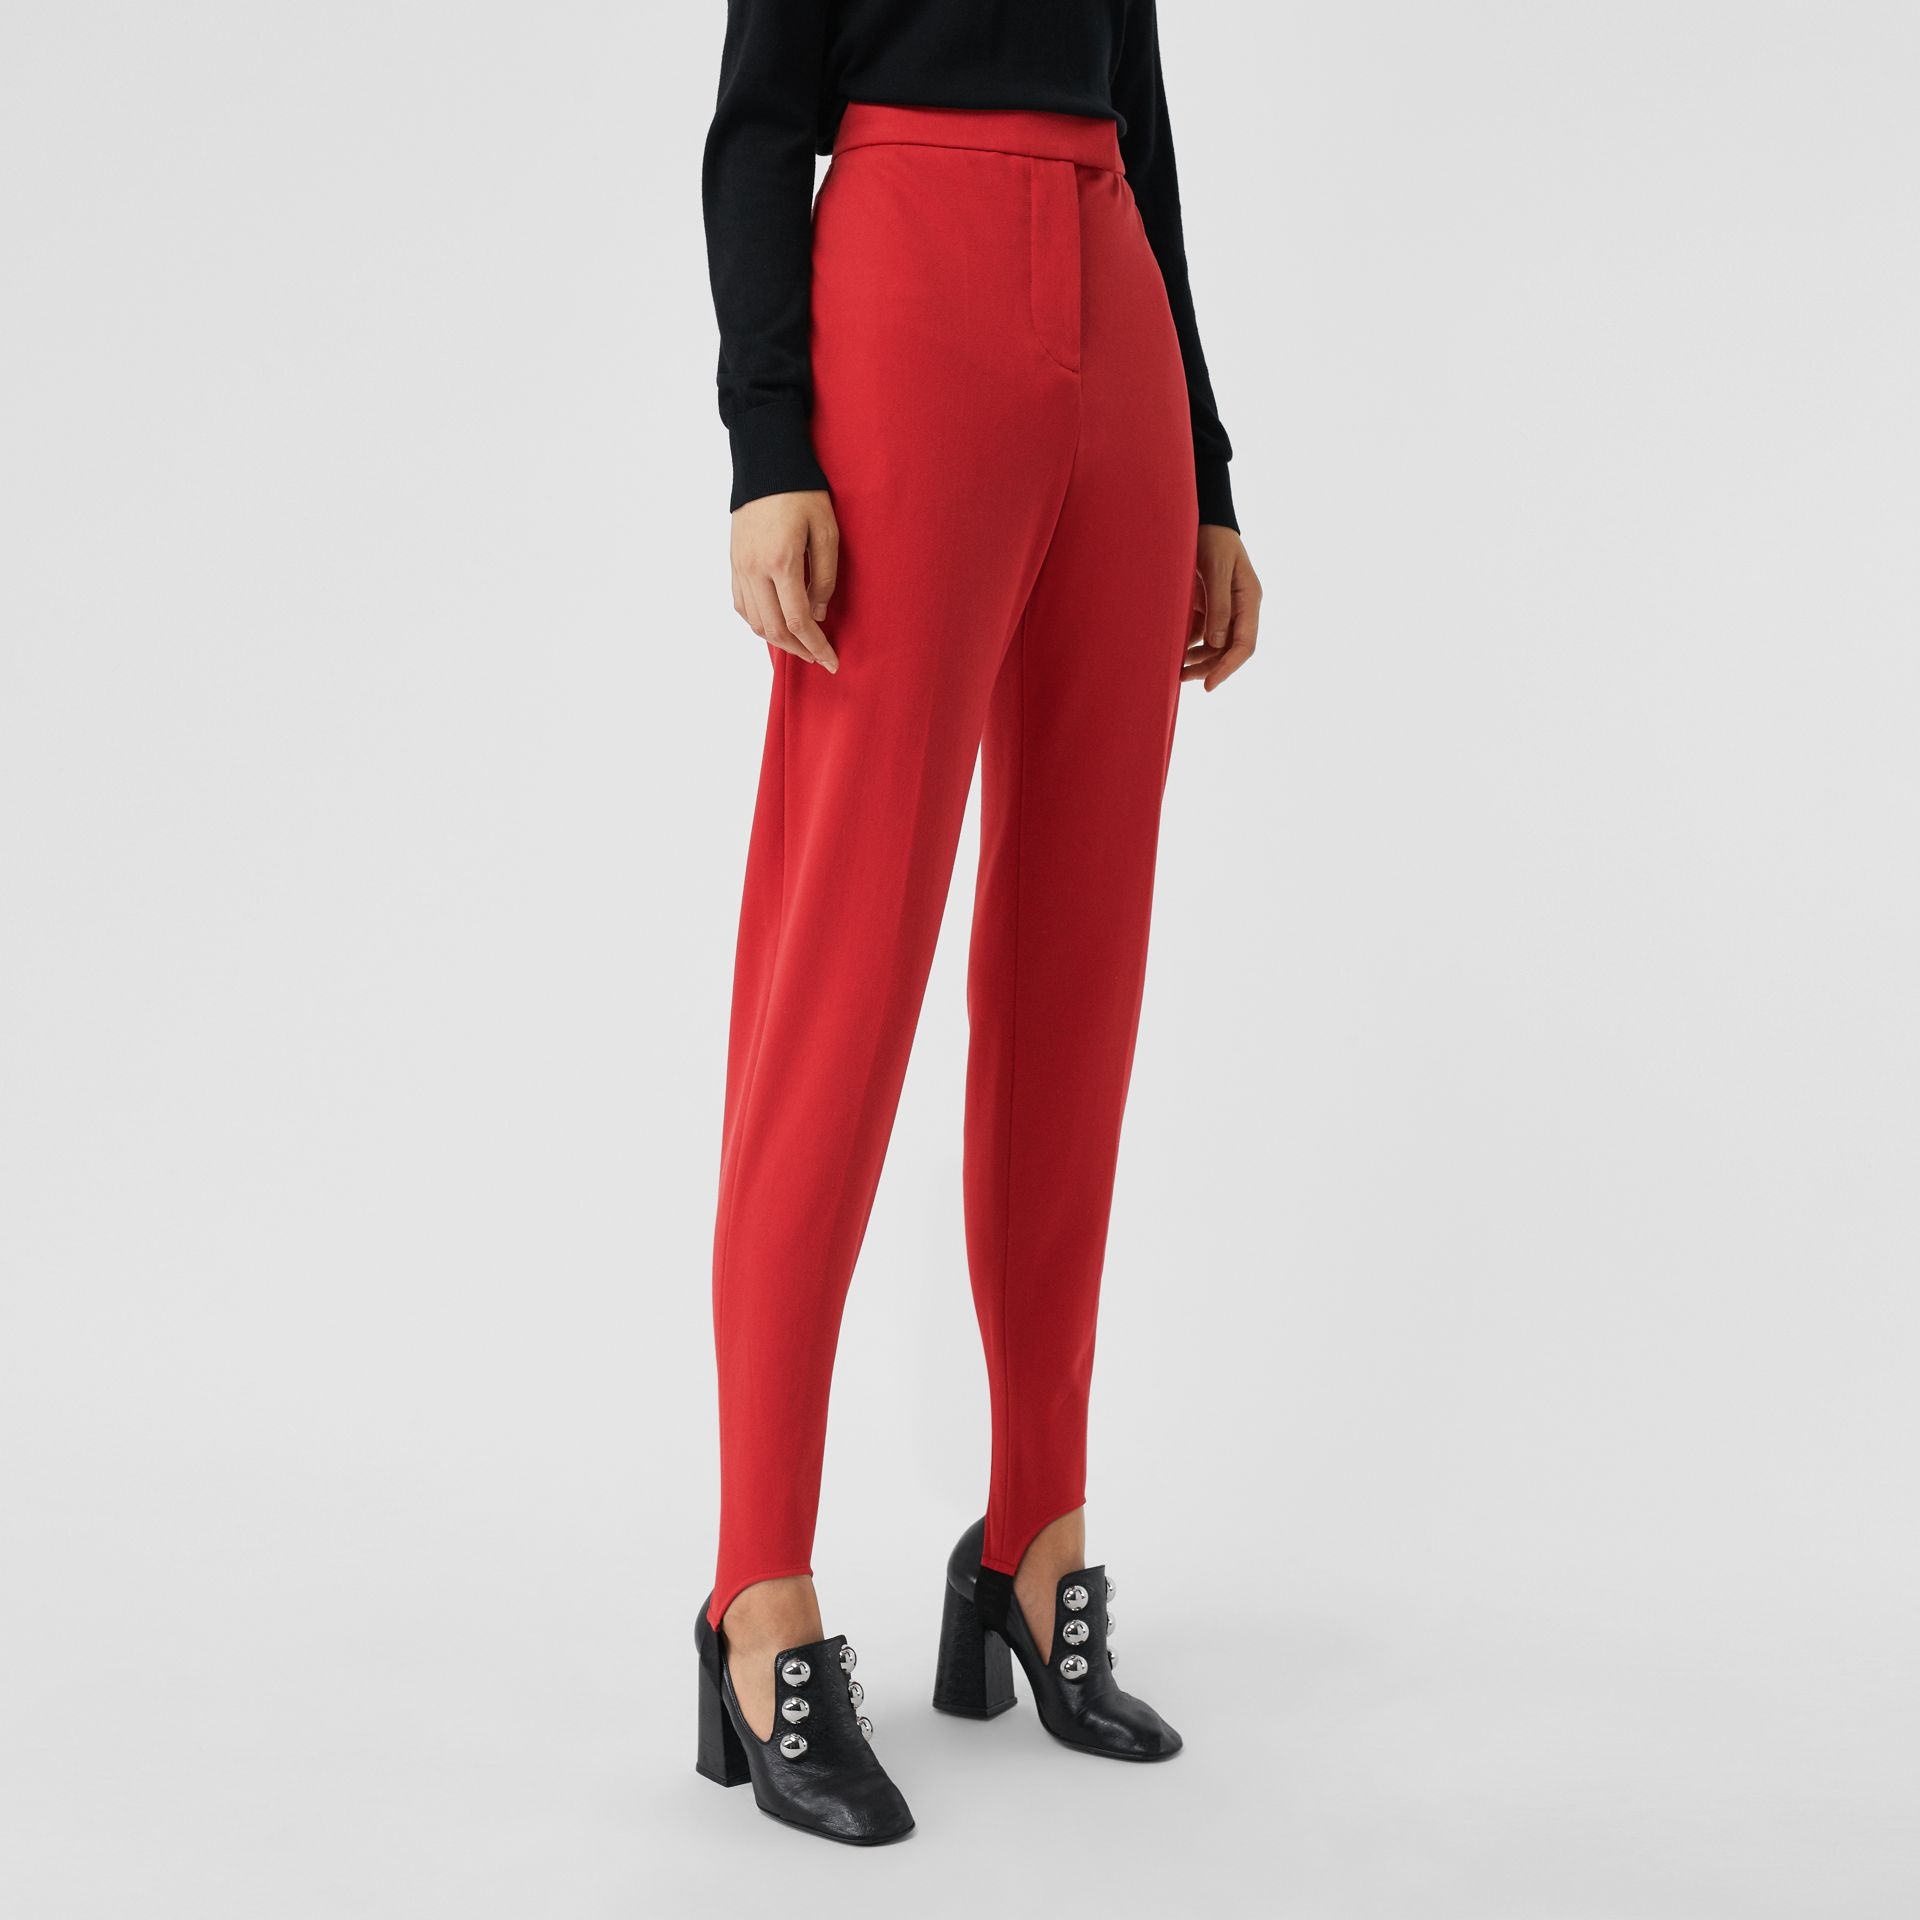 Cotton Blend Tailored Jodhpurs in Bright Red - Women | Burberry Canada - gallery image 5